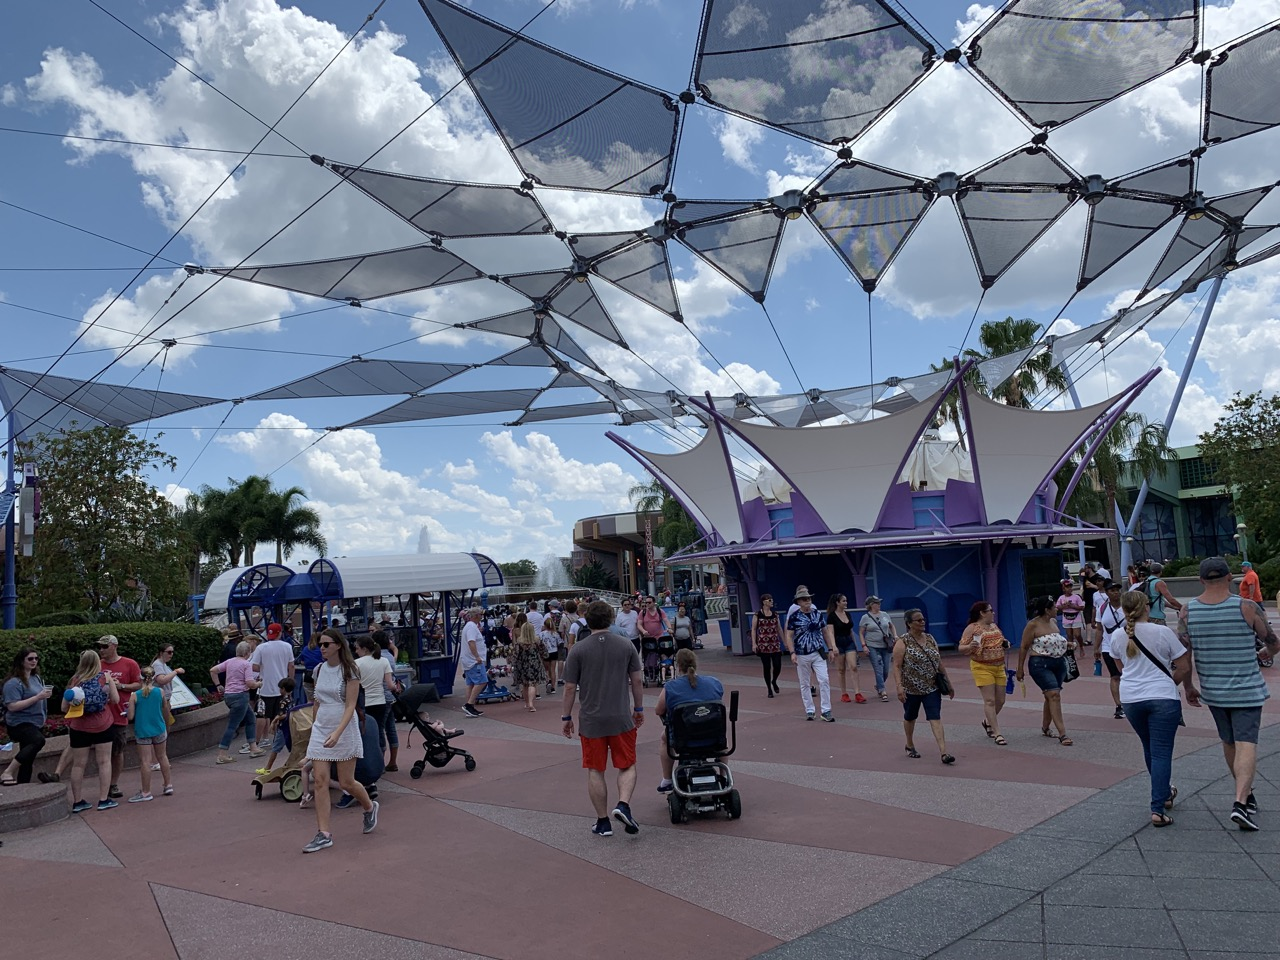 disney world trip report early summer 2019 day four 01 arrival crowds.jpeg